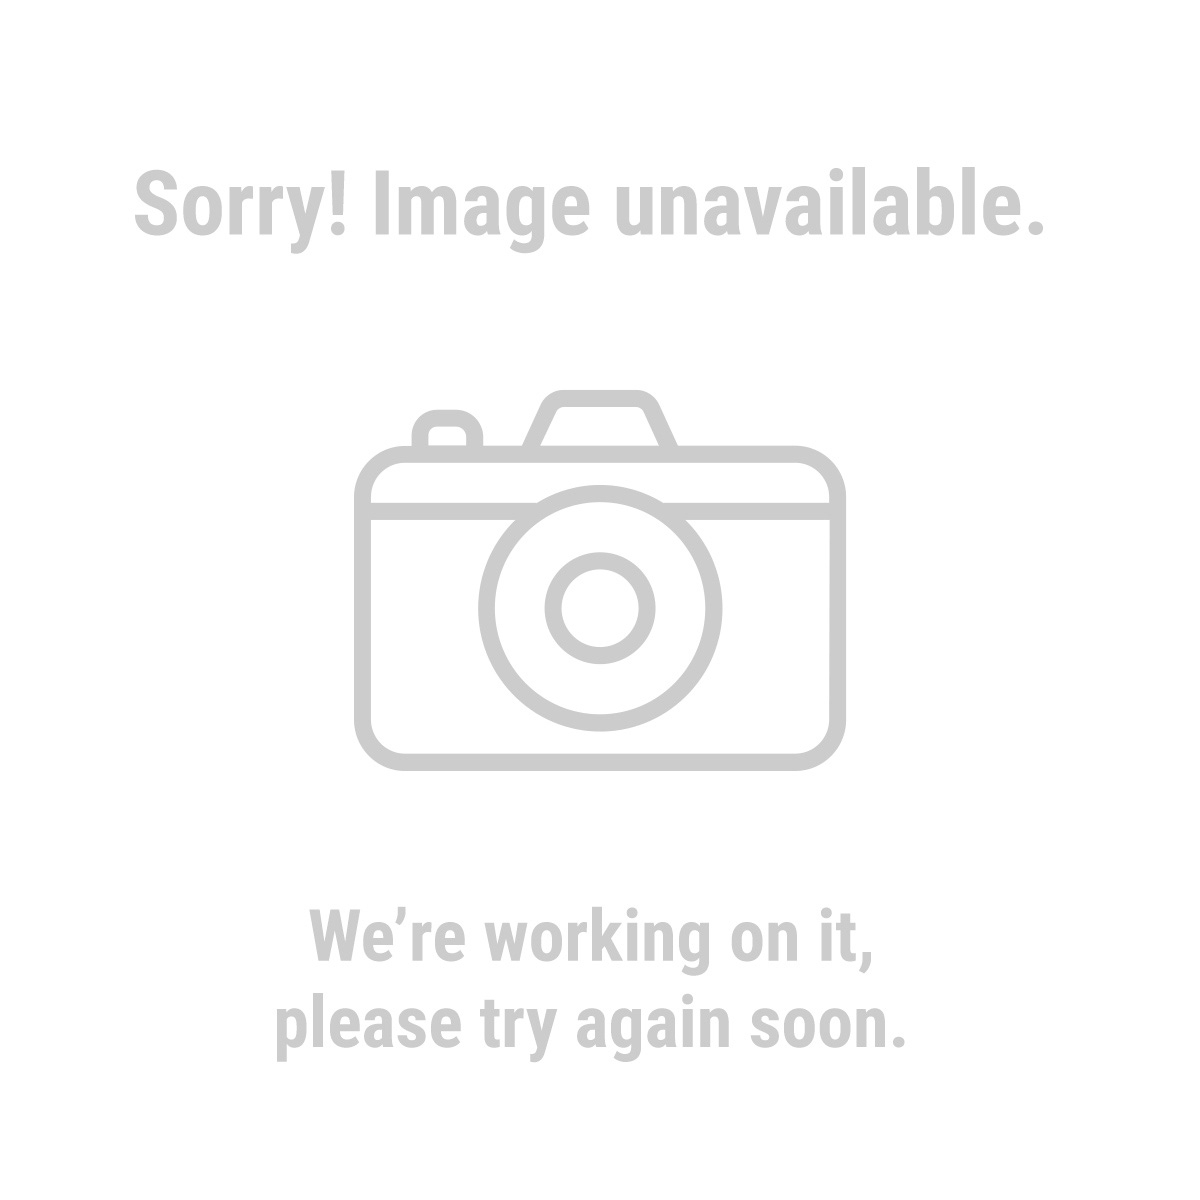 Cen-Tech® 62359 Digital Inspection Camera